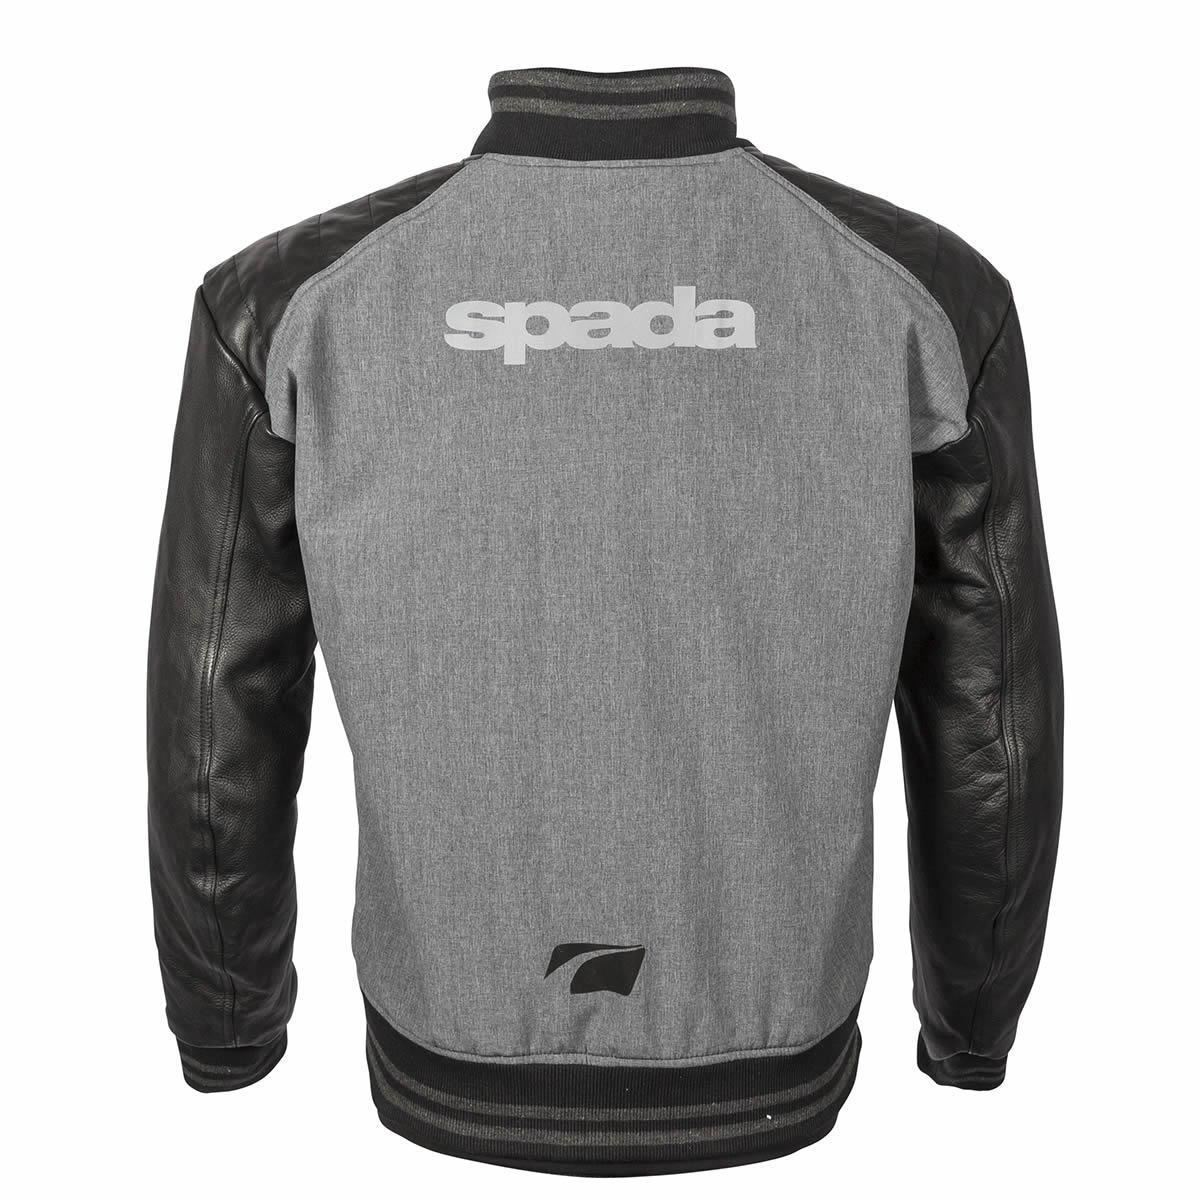 Spada-Campus-Yale-Men-039-s-Motorcycle-Jacket-Grey-Leather-Textile-CE-Armour-Summer miniature 10